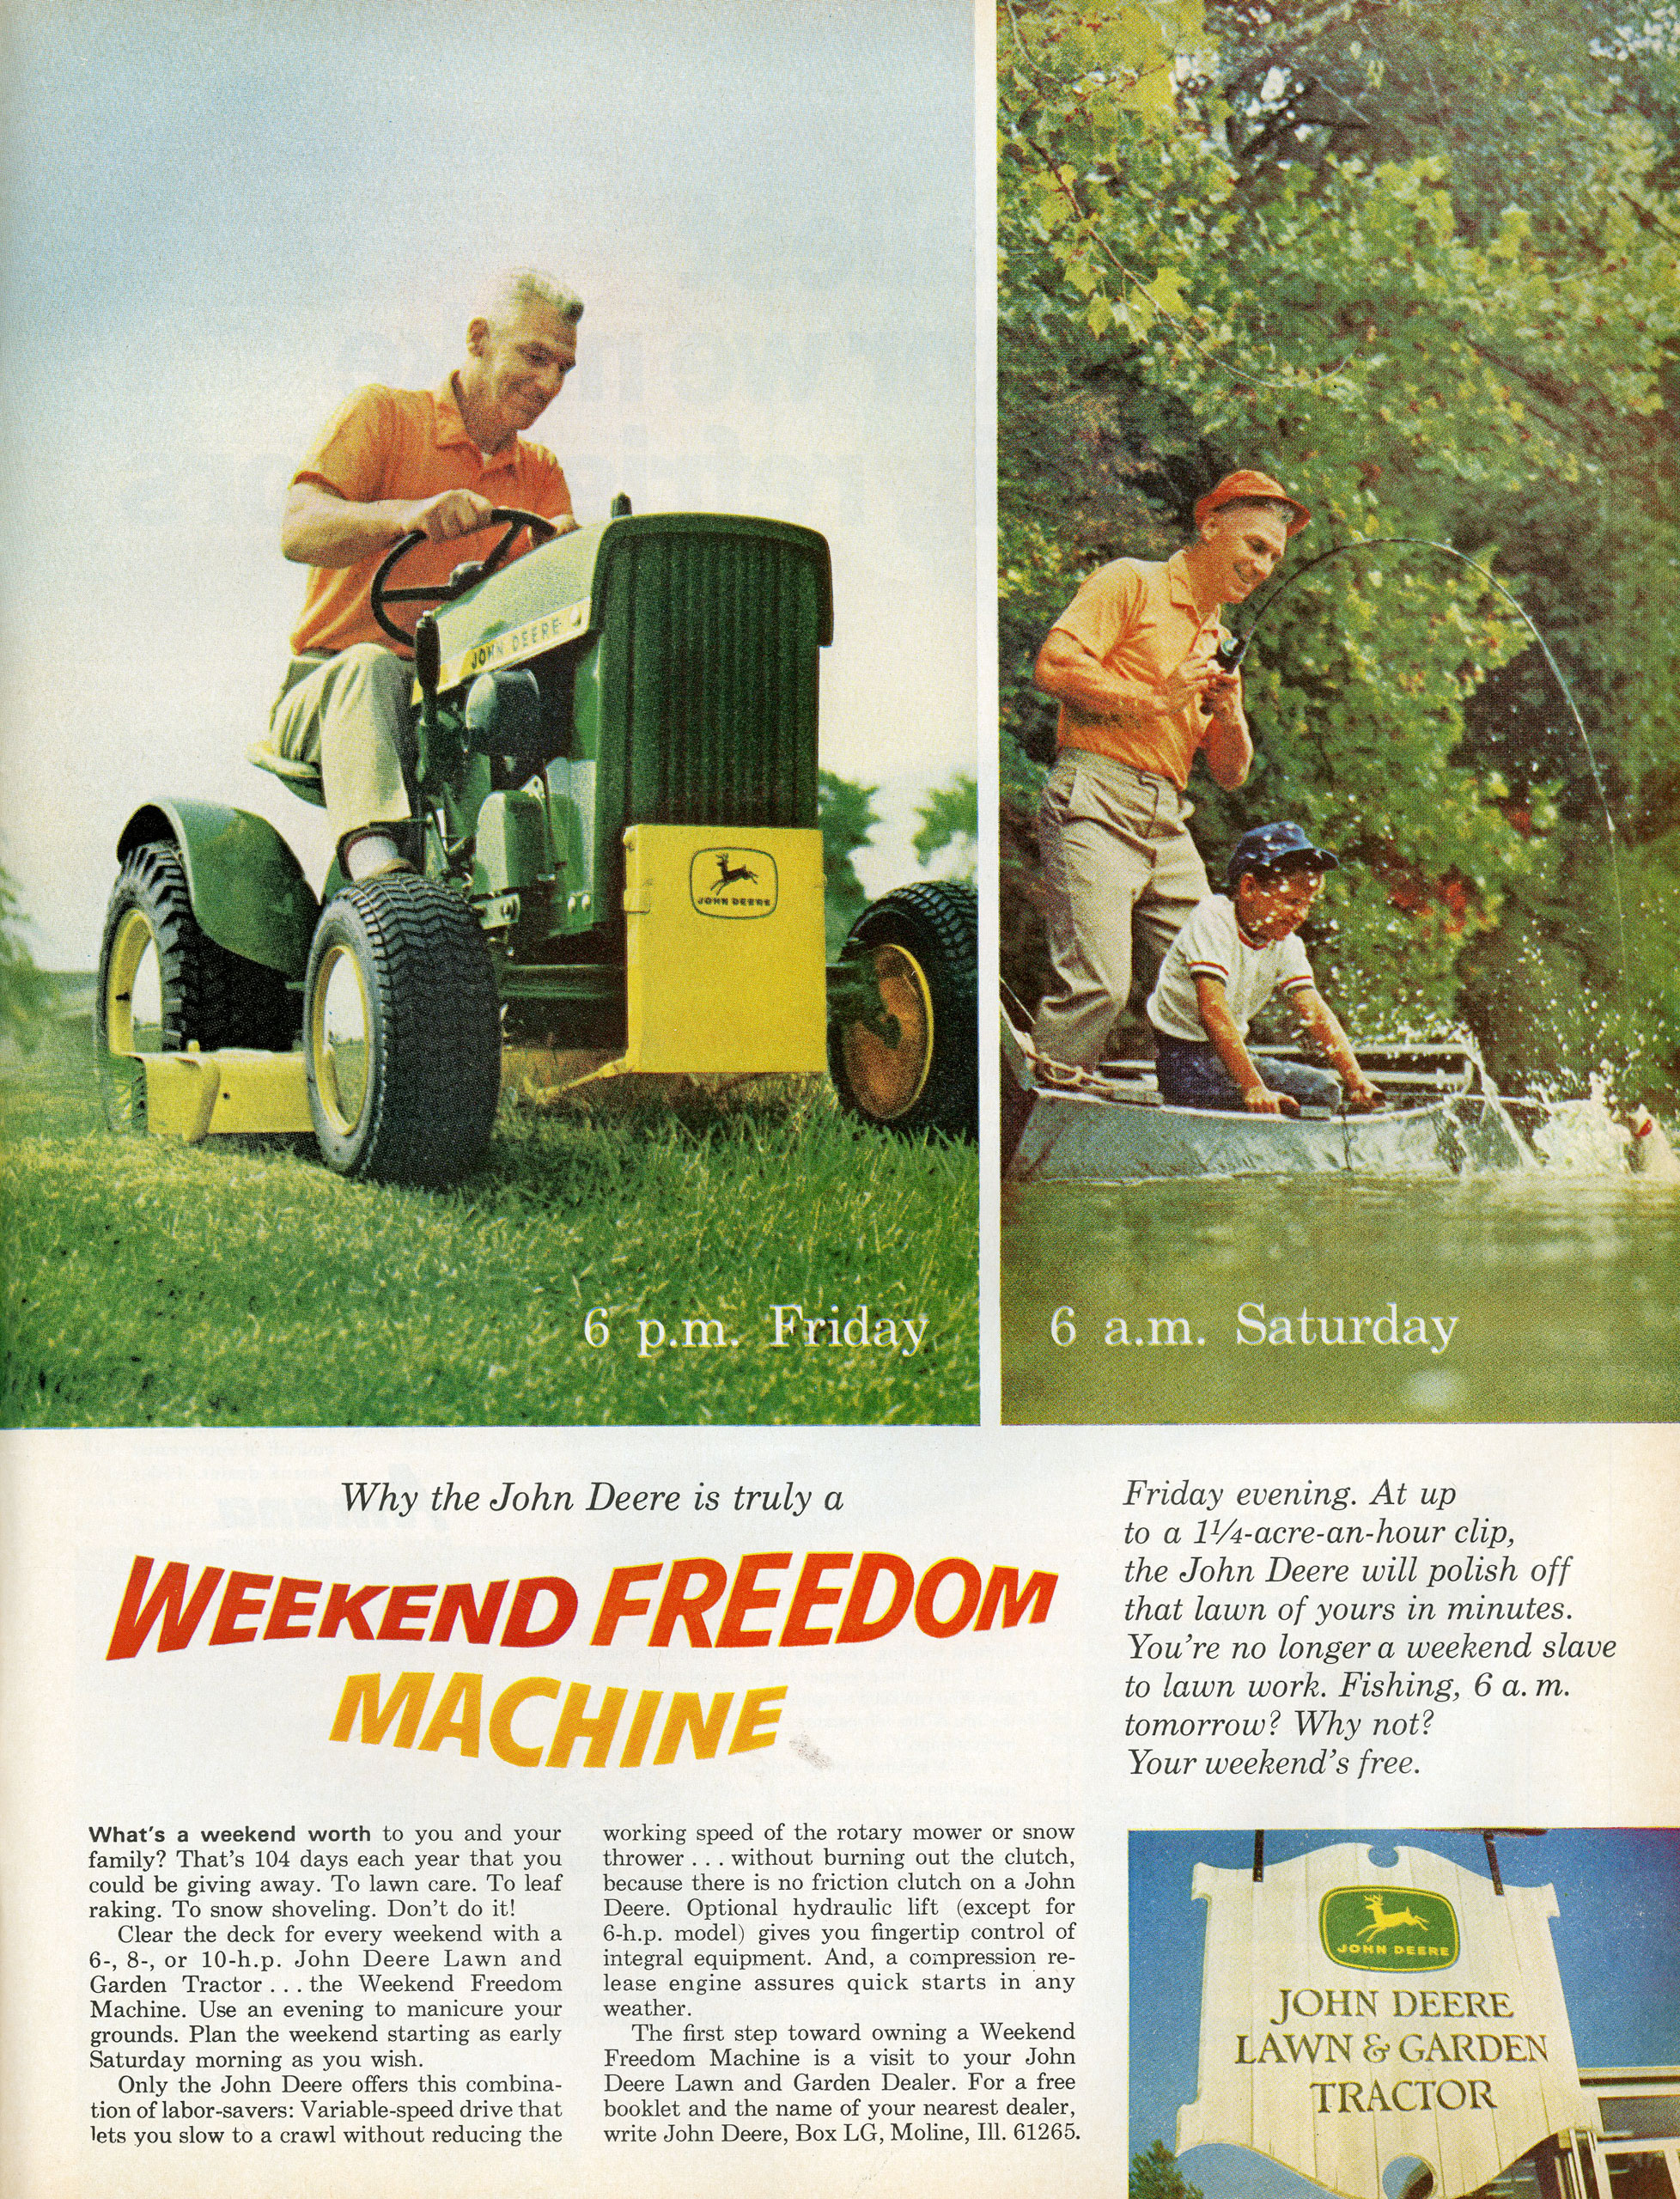 <b>John Deere, April 7, 1967</b> When remembering the Season 3 episode featuring John Deere, viewers will think first of the gruesome office accident involving a lawnmower. We never actually get to see the agency's work for the company. The company's real advertisements, later in the decade, sold lawnmowers by emphasizing how little time those who bought one would end up spending on it. It's a bold way of circumventing the problem that the company's product, for many customers, is something they need but don't necessarily want.